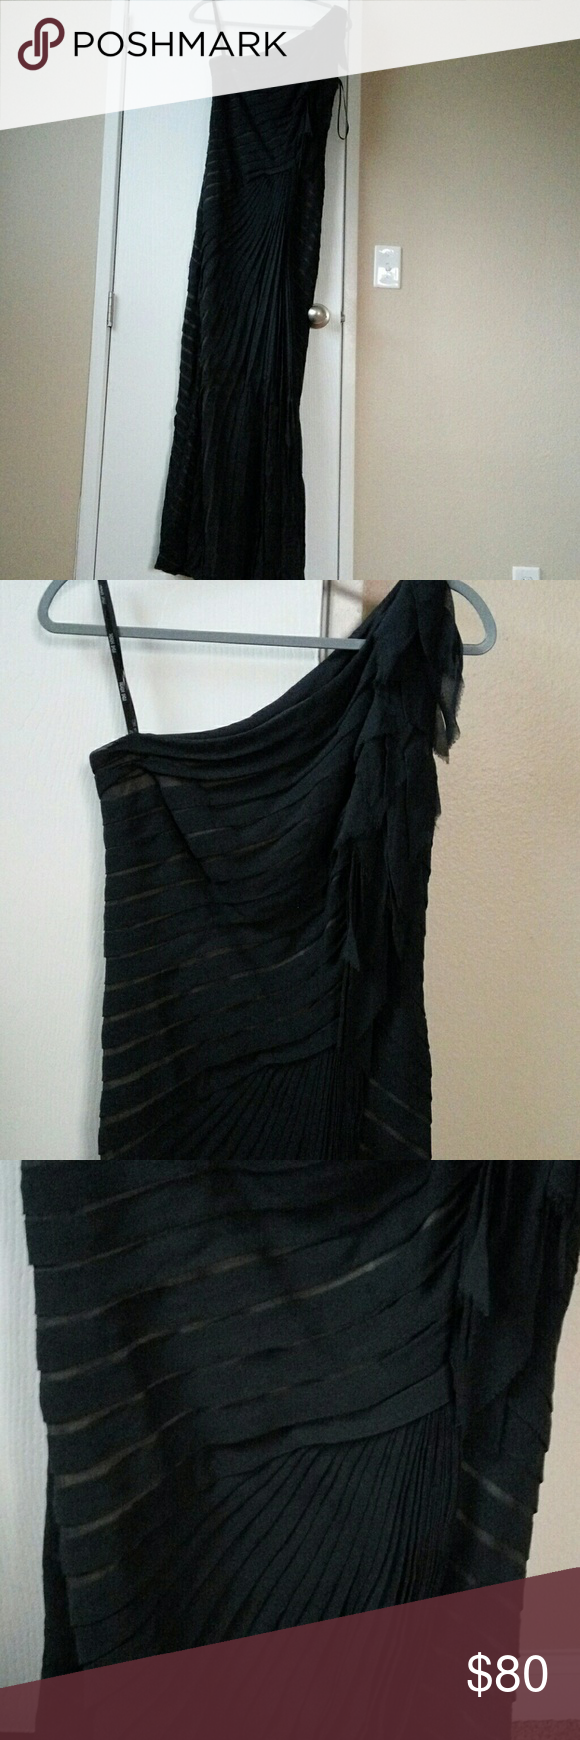 """Fabulous one shoulder dark blue night long gown It's a beautiful night grow from 💯% silk. Lining from 100% polyester.  Burst 26"""", waist 30"""".  Very good condition, just need dry cleaning. Feel free to make an offer 😉😍 Tadashi Shoji Dresses One Shoulder"""